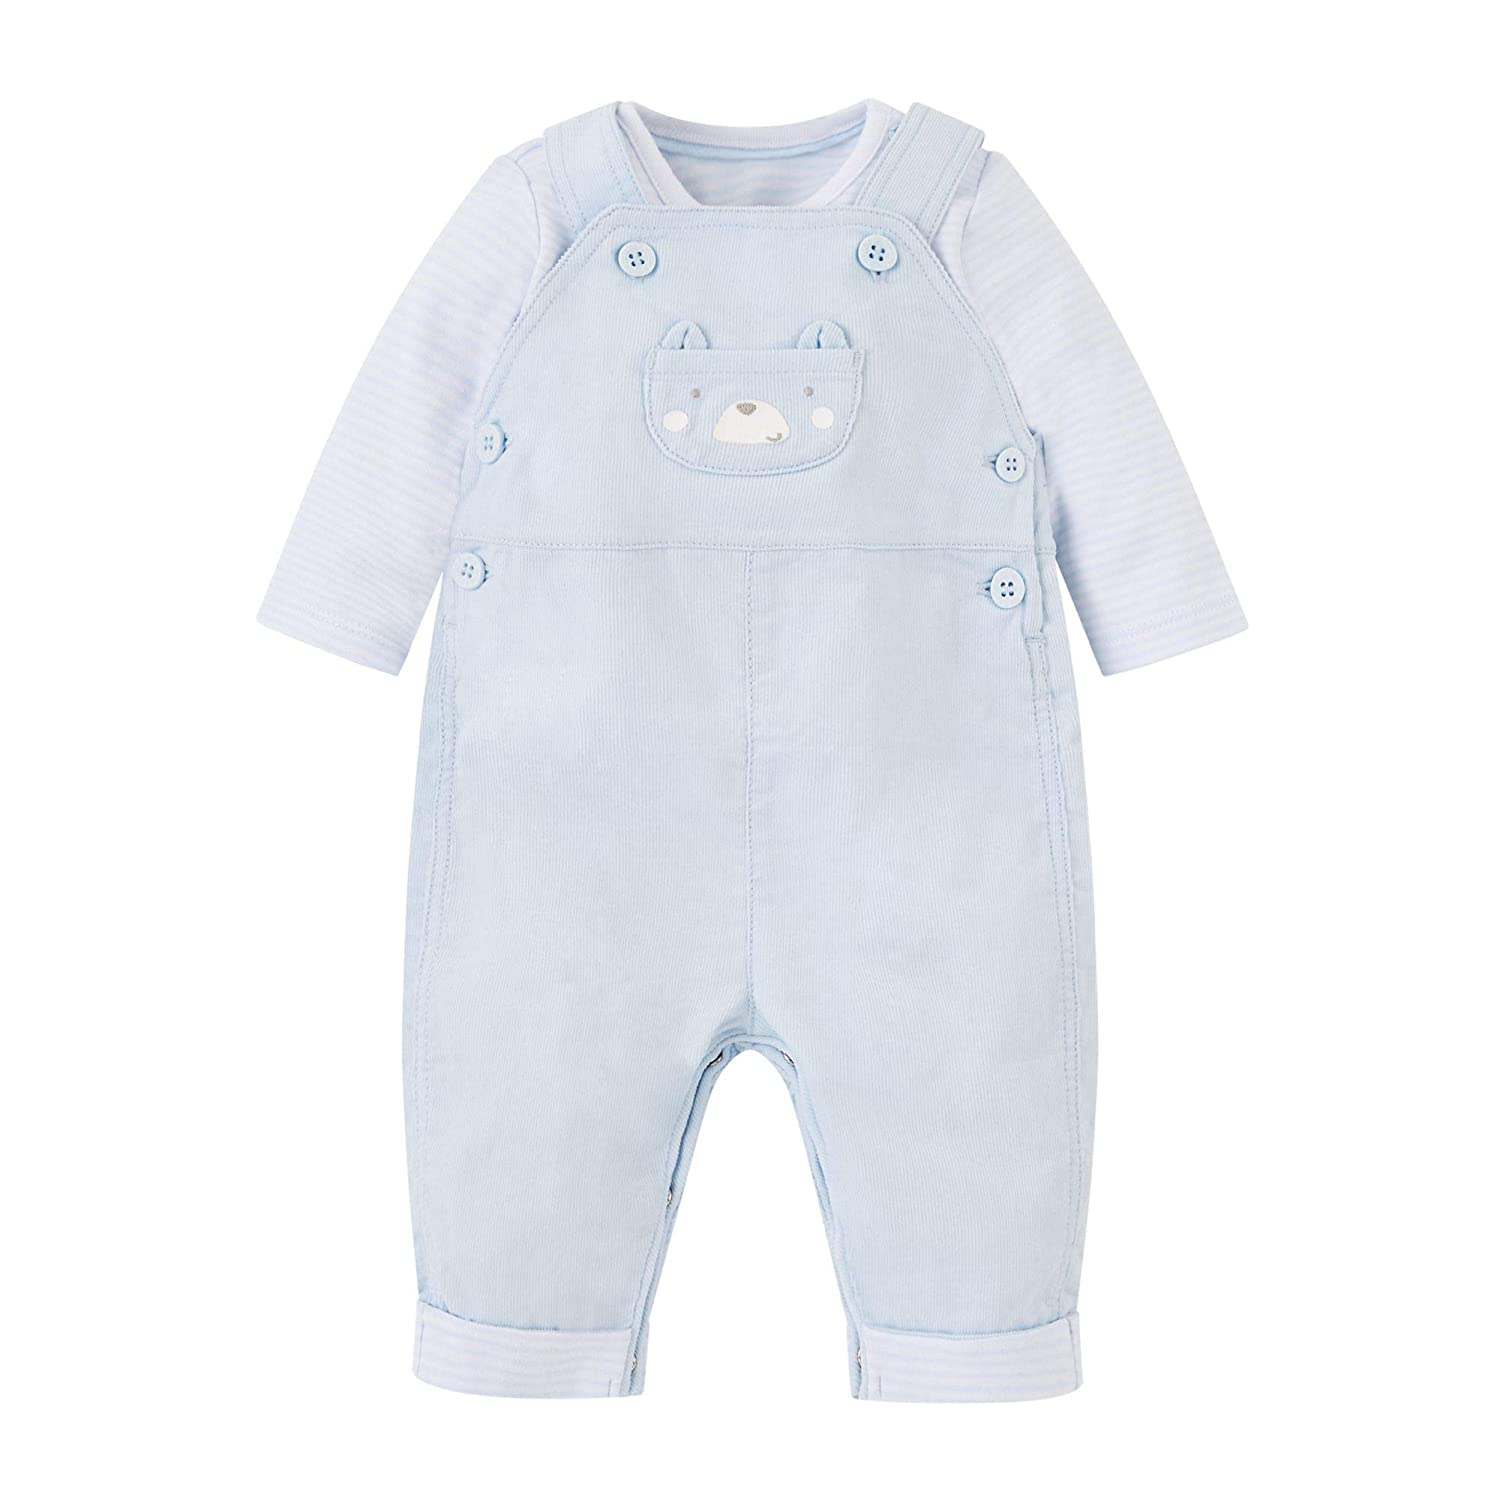 Mothercare Baby Boys' Cord Dungaree & Body QD572